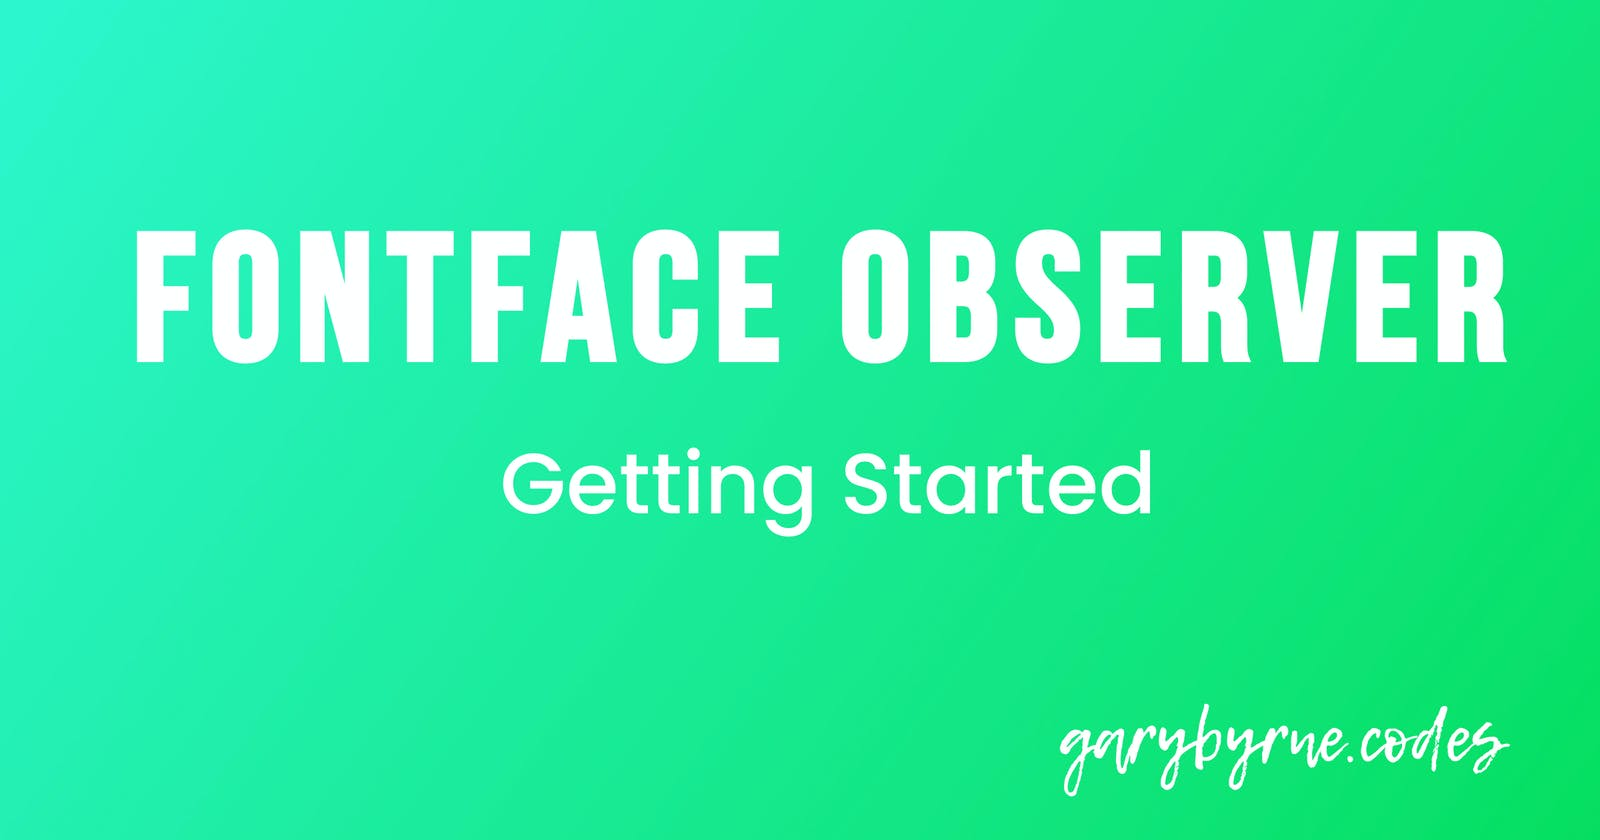 Font Loading with Font Face Observer